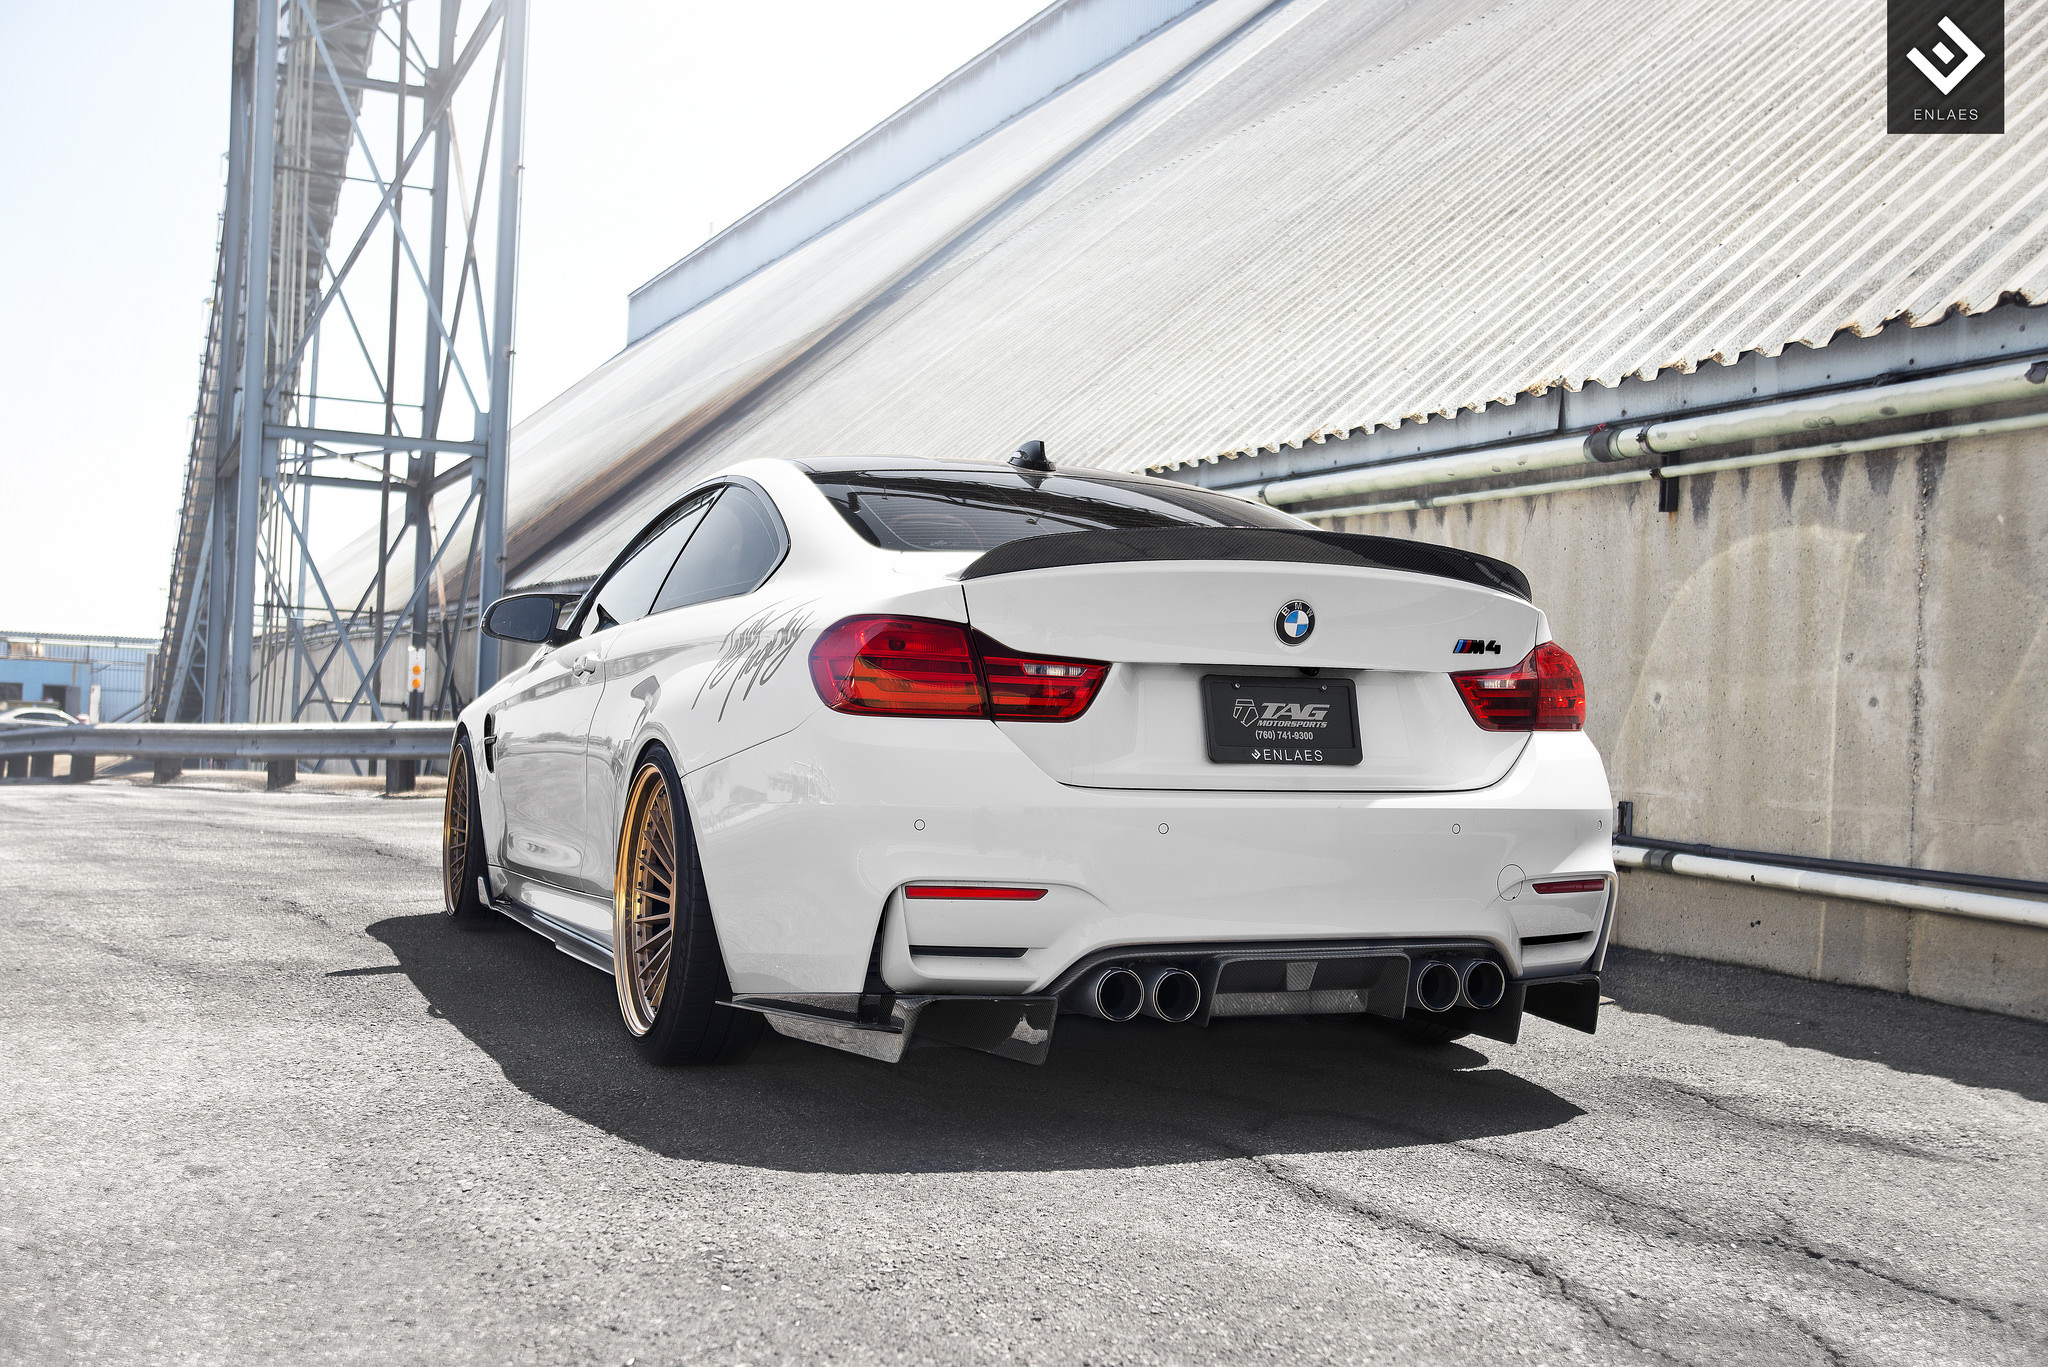 alpine-white-bmw-m4-by-tag-motorsports-11